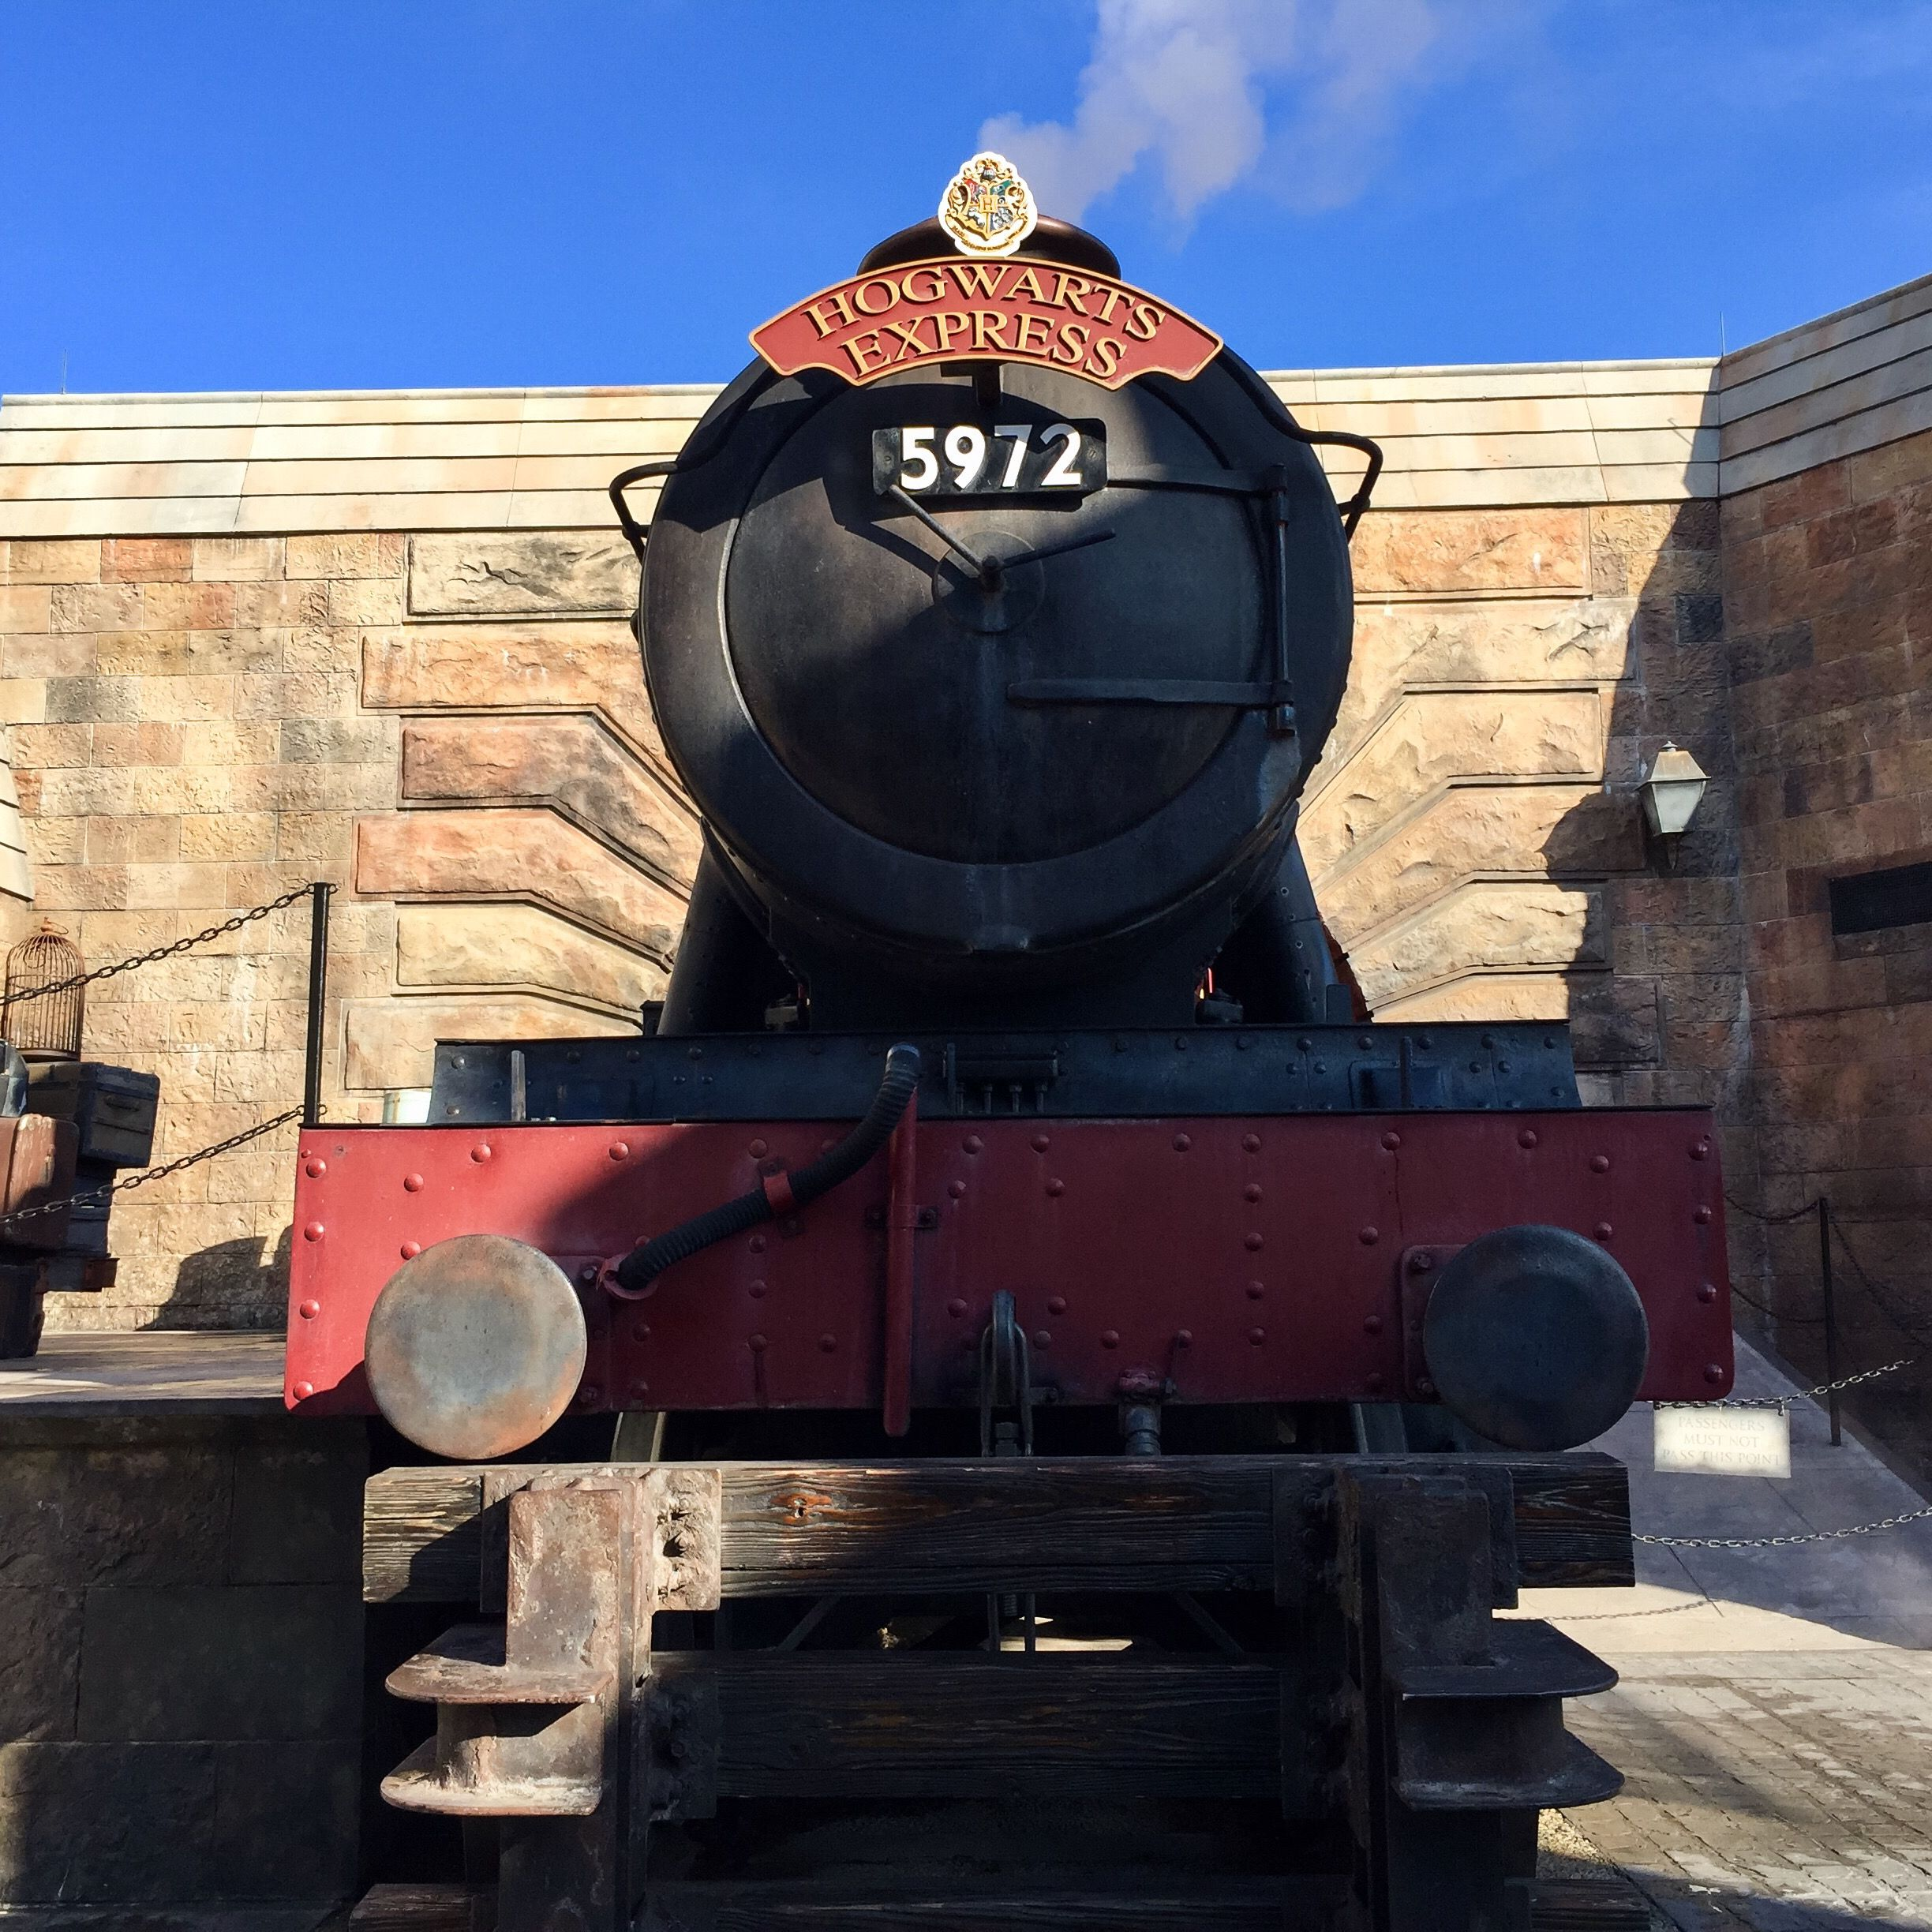 Review of Hogwarts Express - Harry Potter Train Ride